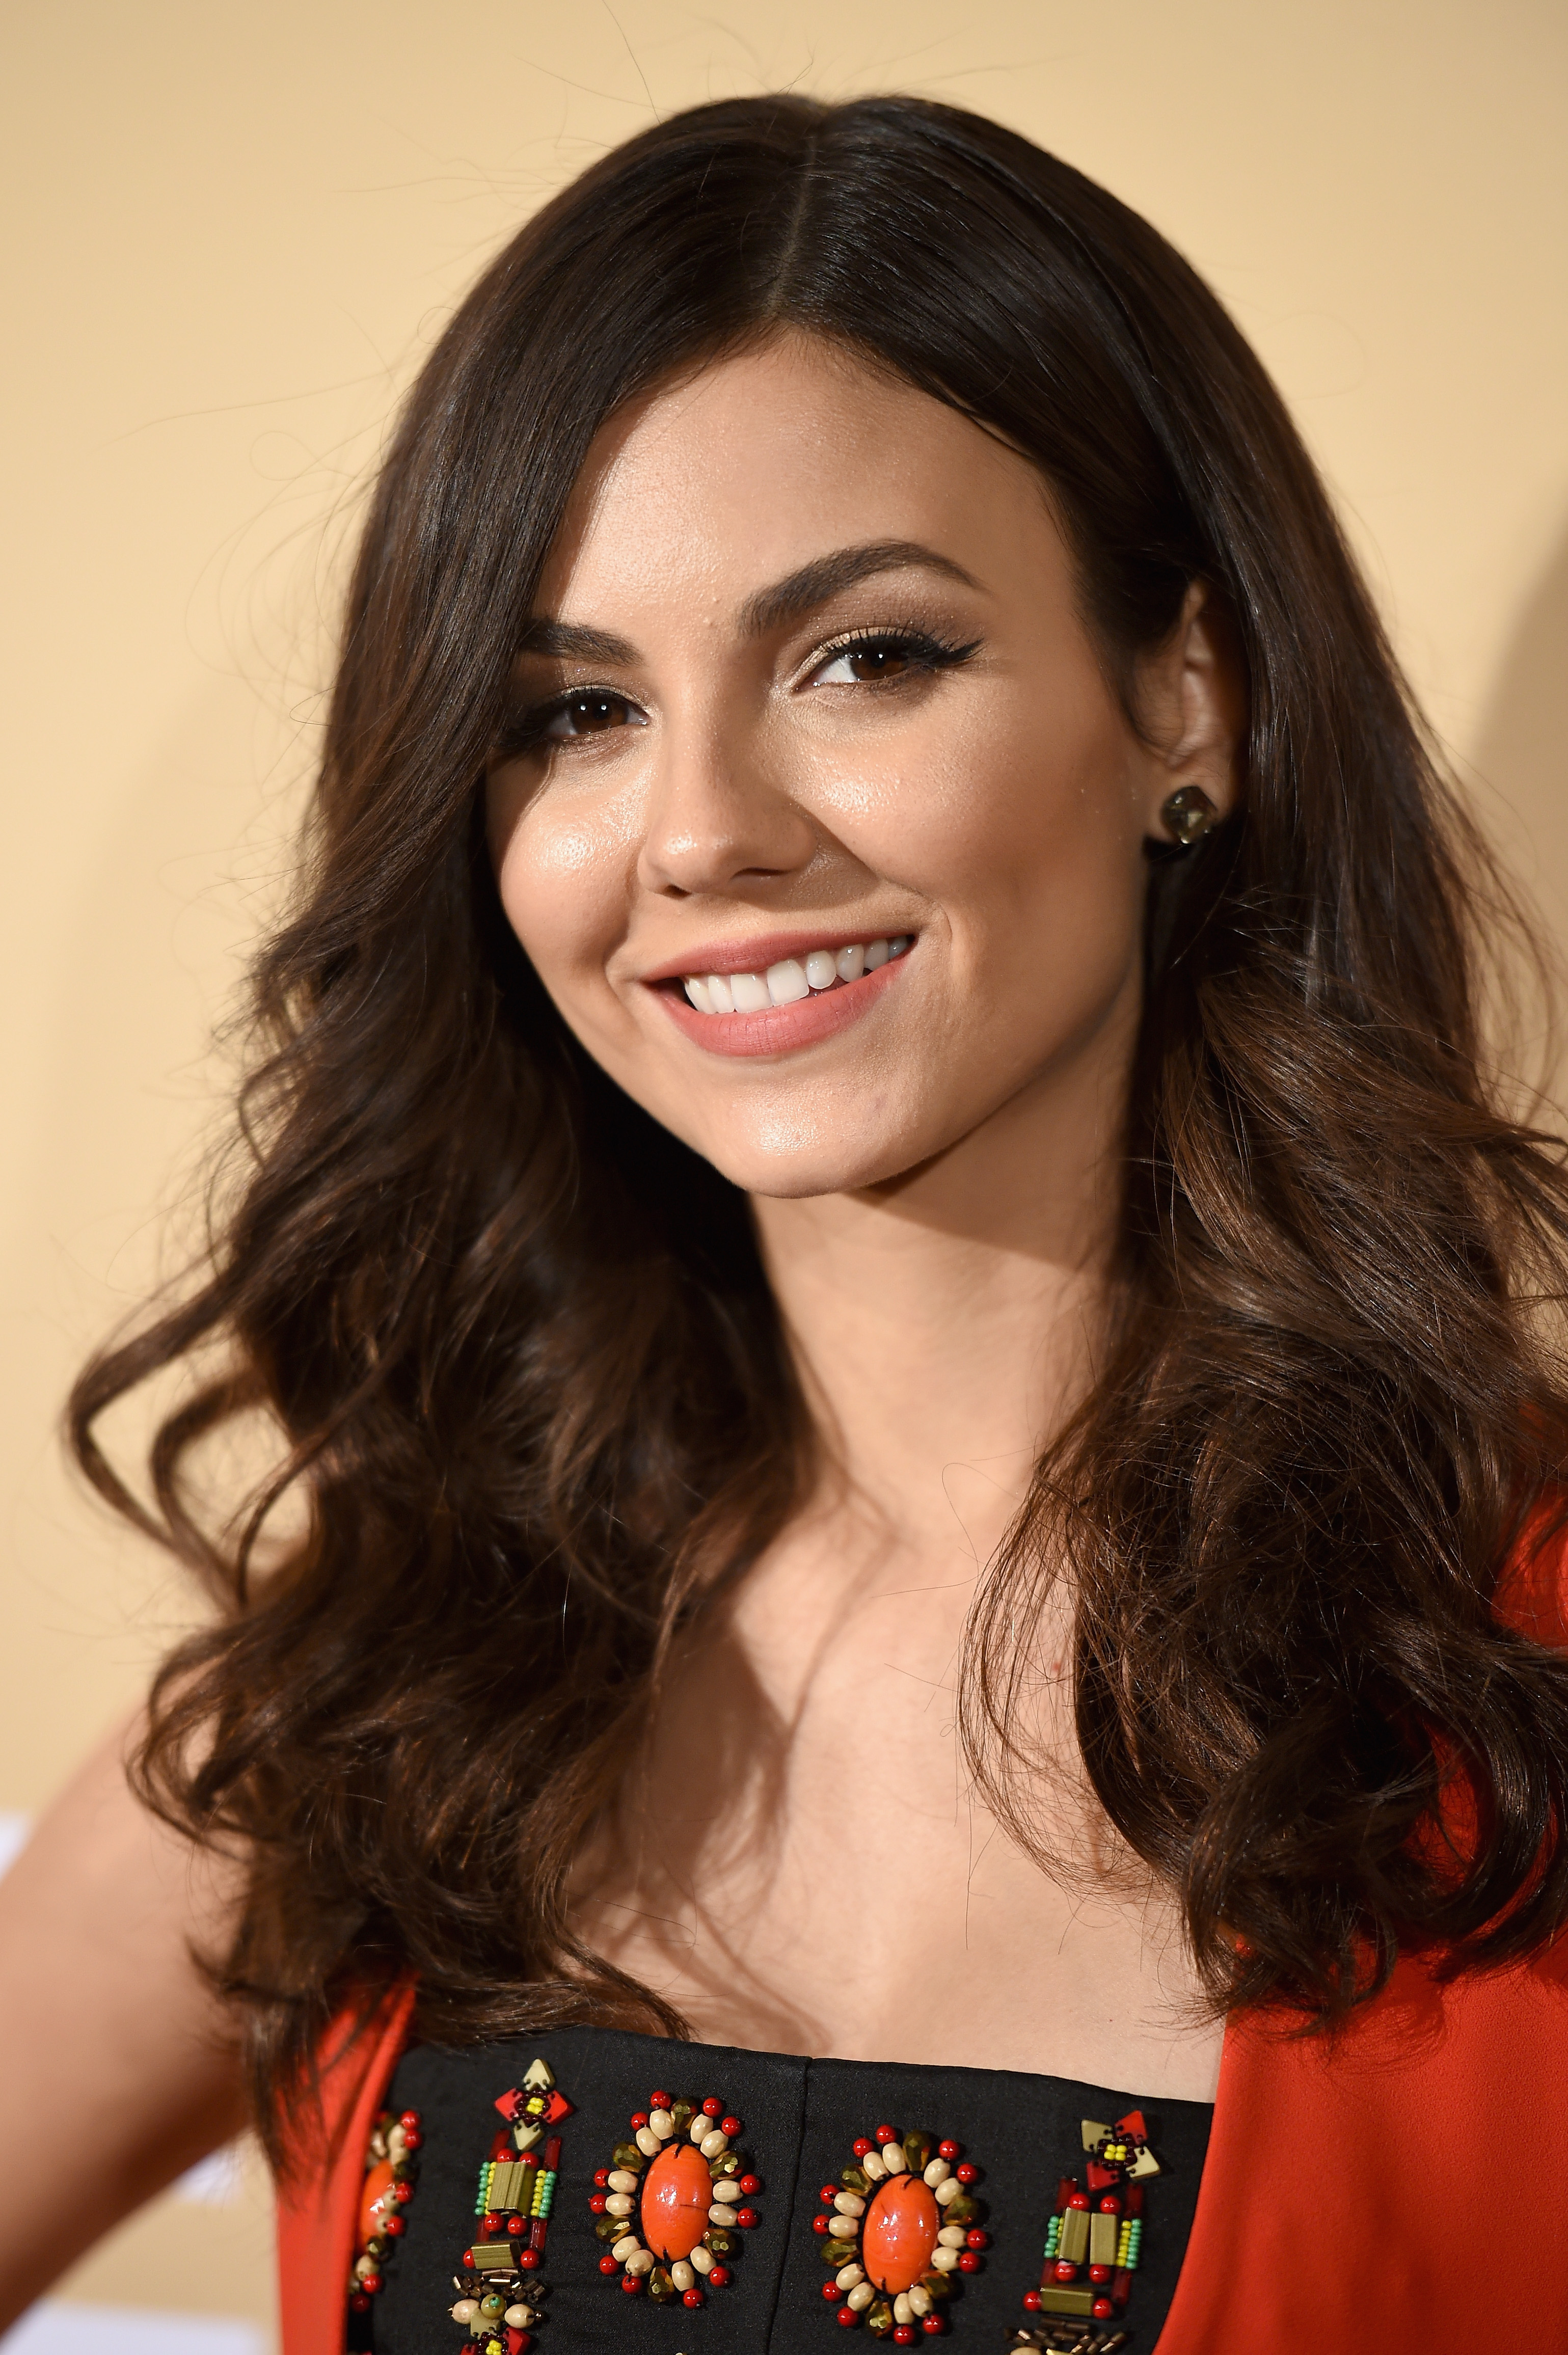 Victoria Justice - Wikipedia 1000 images about Victoria justice on Pinterest | Victorious tori .